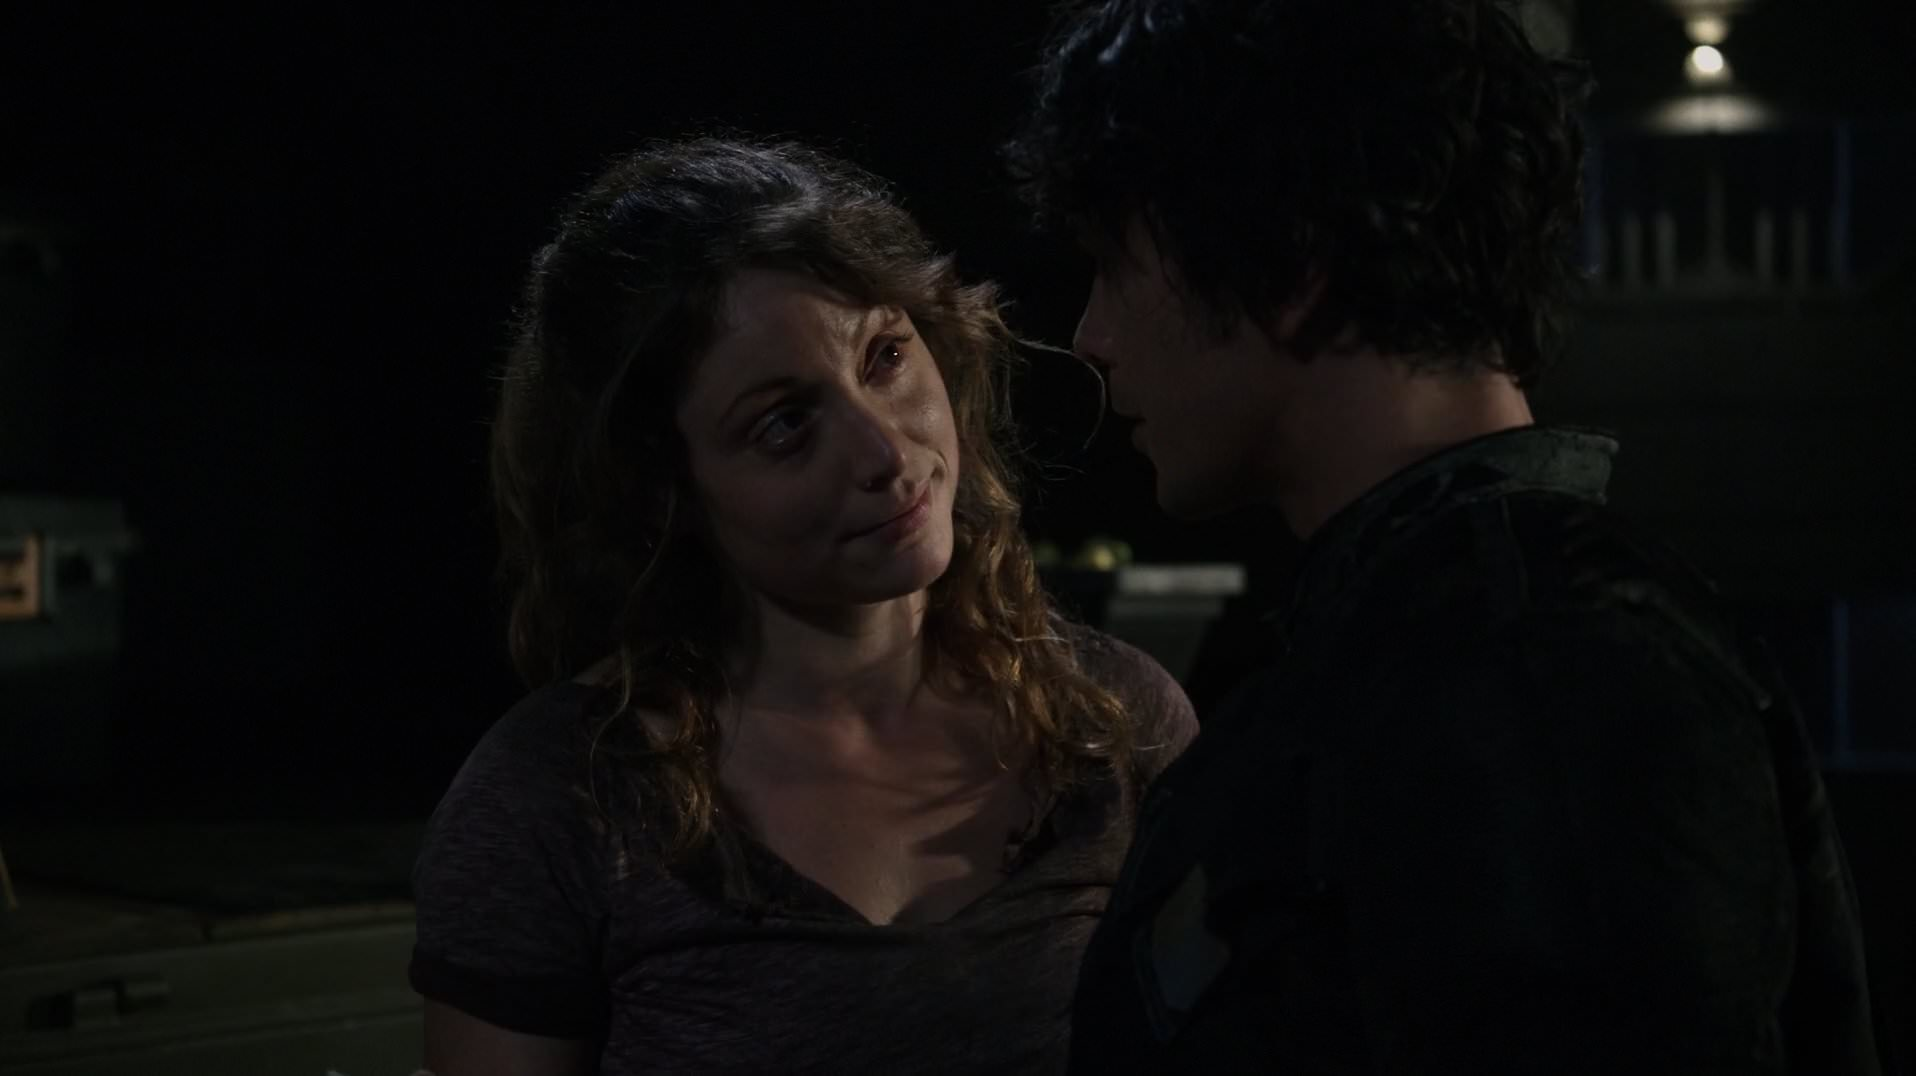 100 Thoughts on The 100: Bellamy Blake's Refrigerator Full of Women Gina